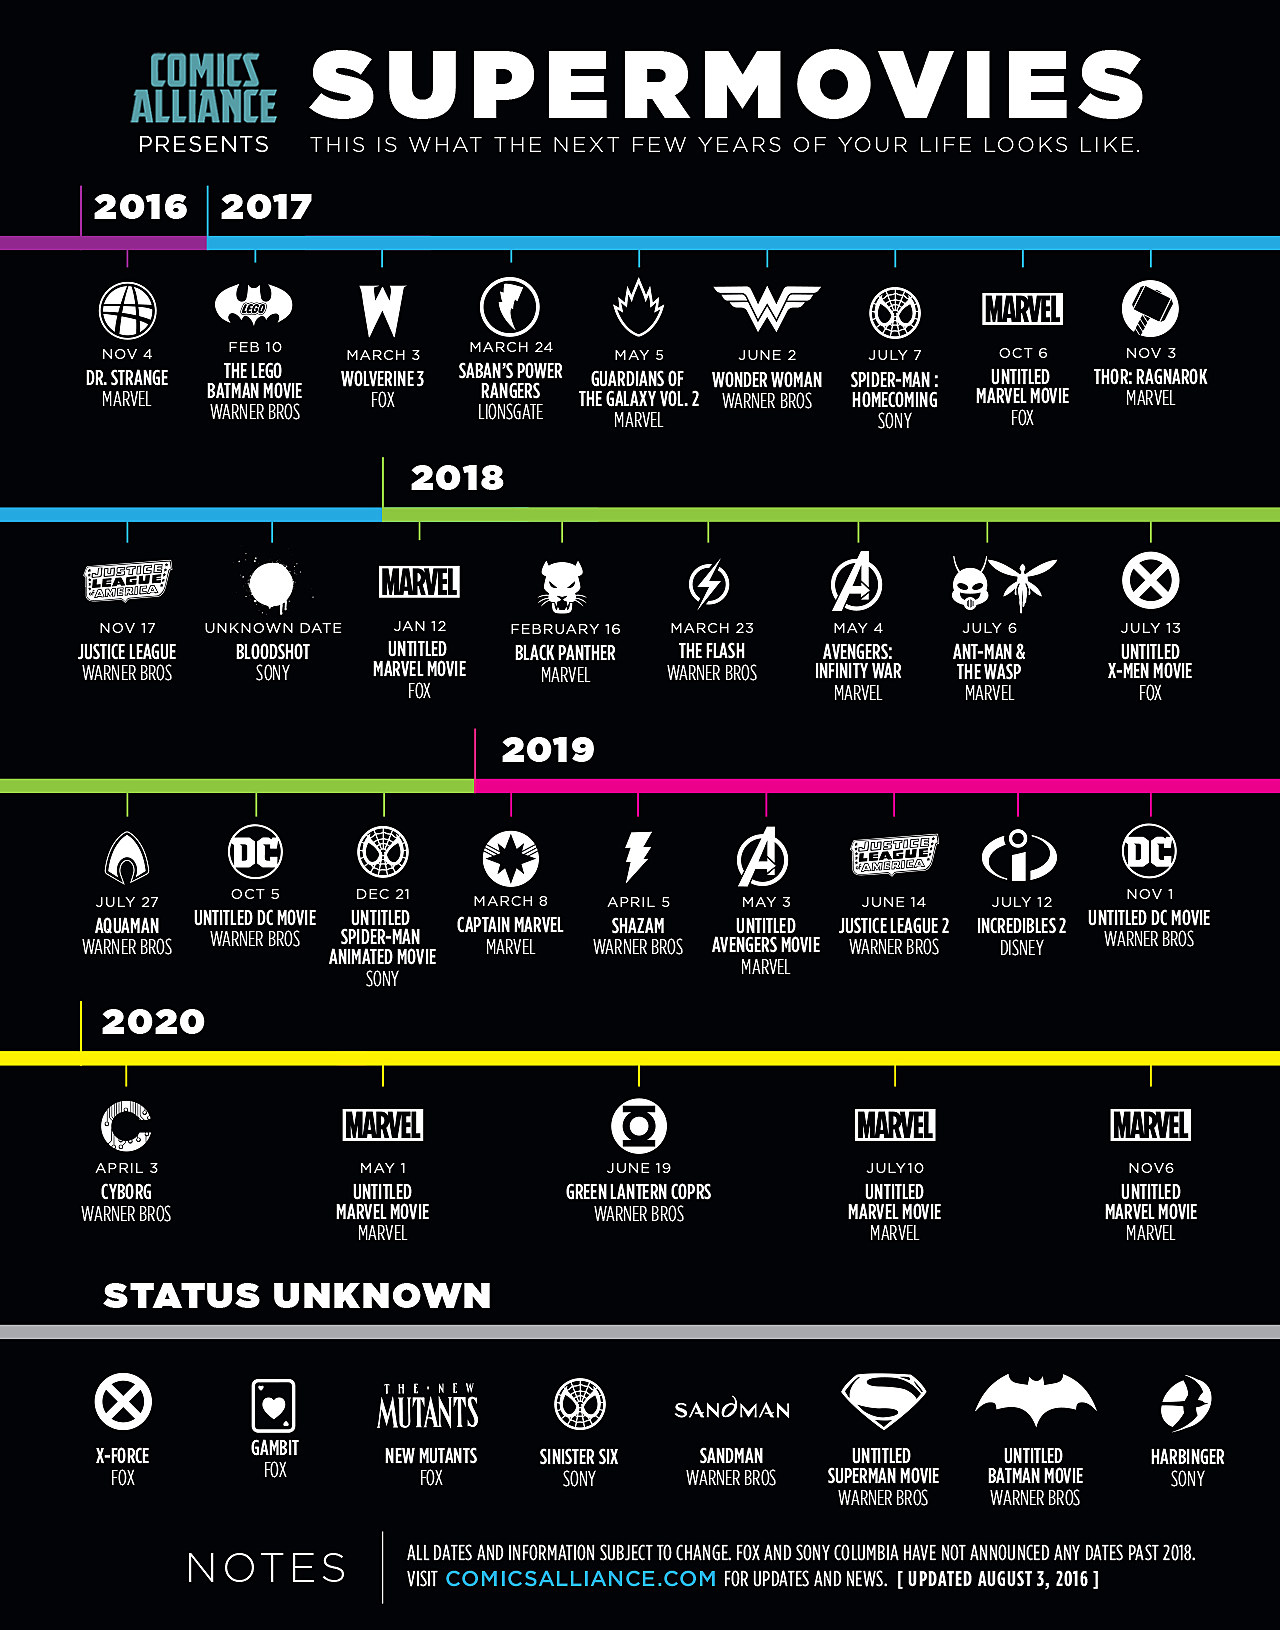 How Was The Calendar Created Universe Illuminati Marvel Universe Wiki The Definitive Online Comicsalliance Presents The Supermovies Infographic